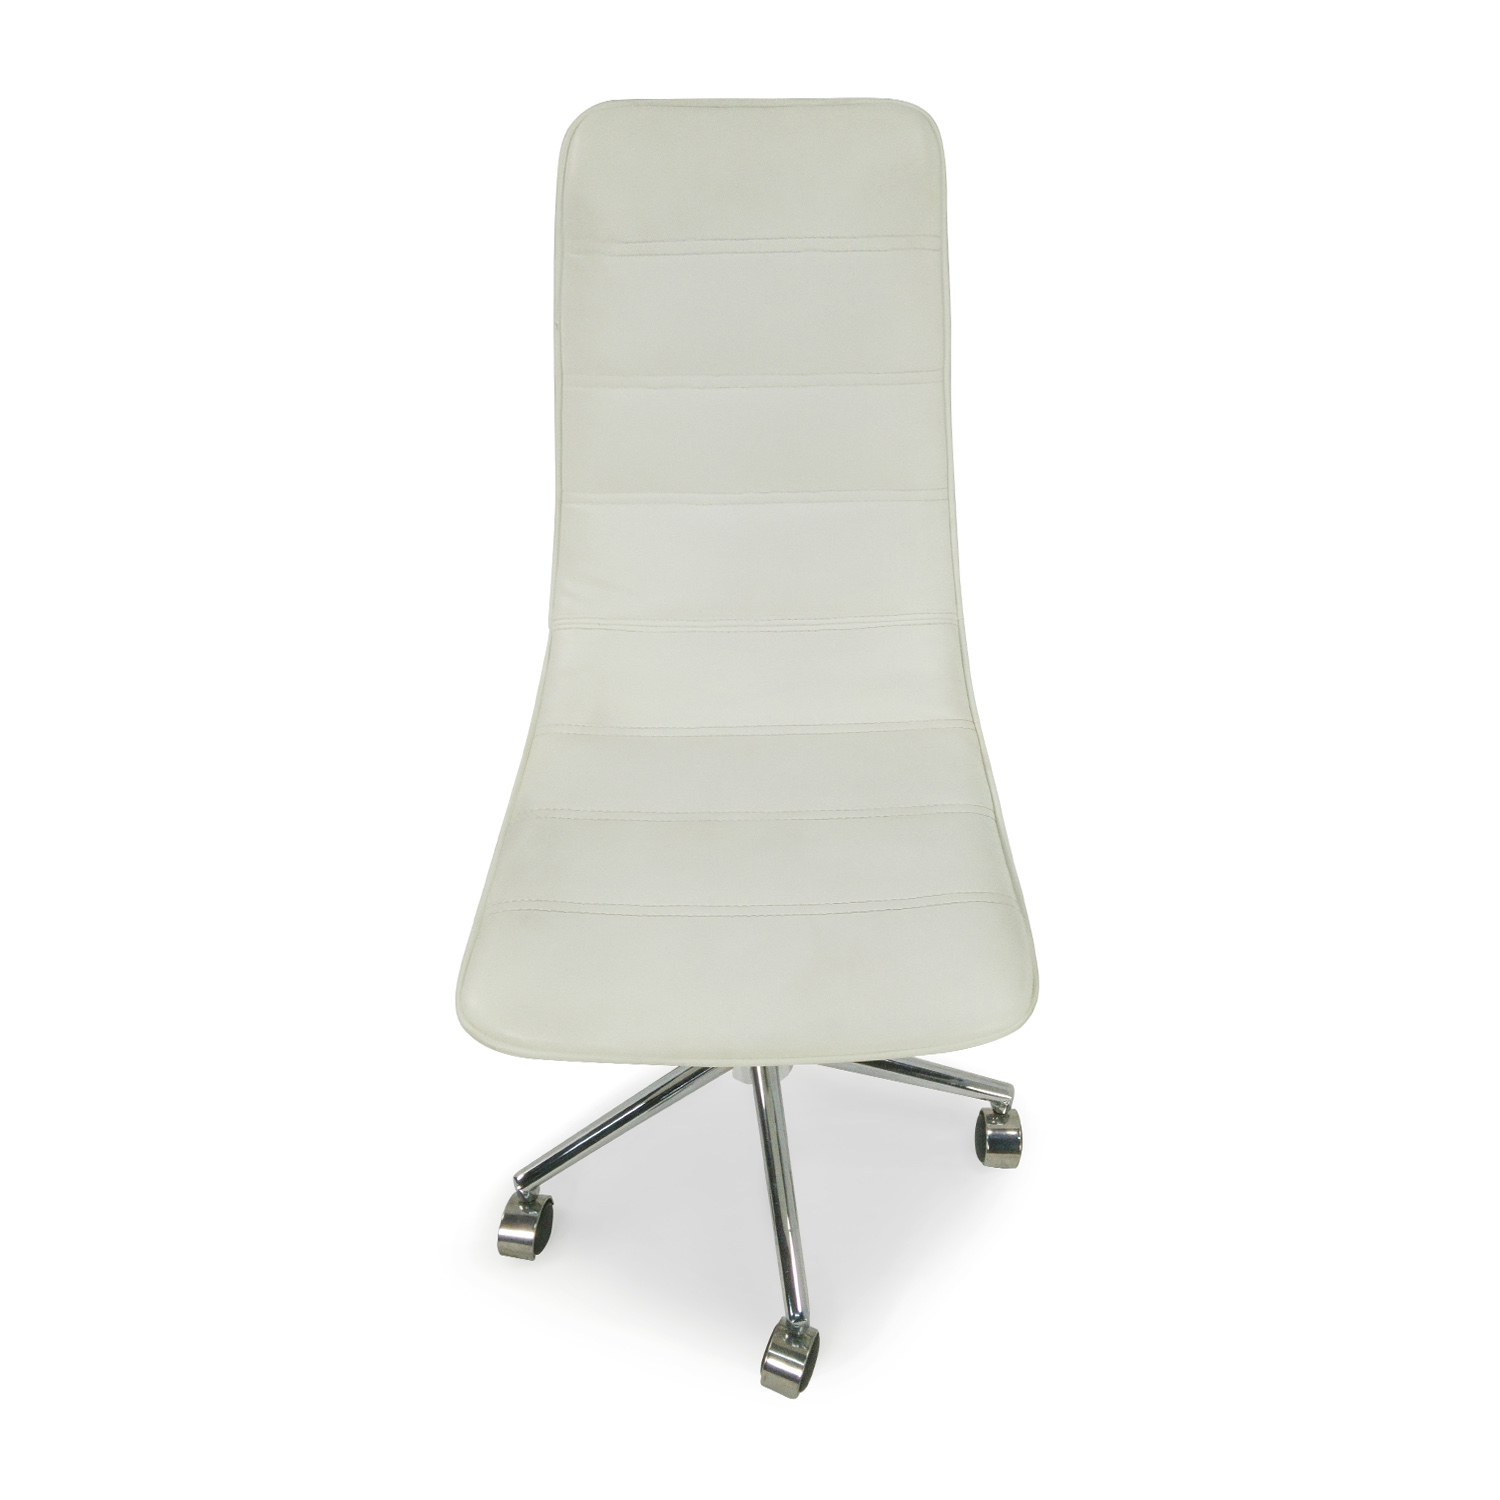 zuo swivel chair healthy office chairs 51 off ikea markus